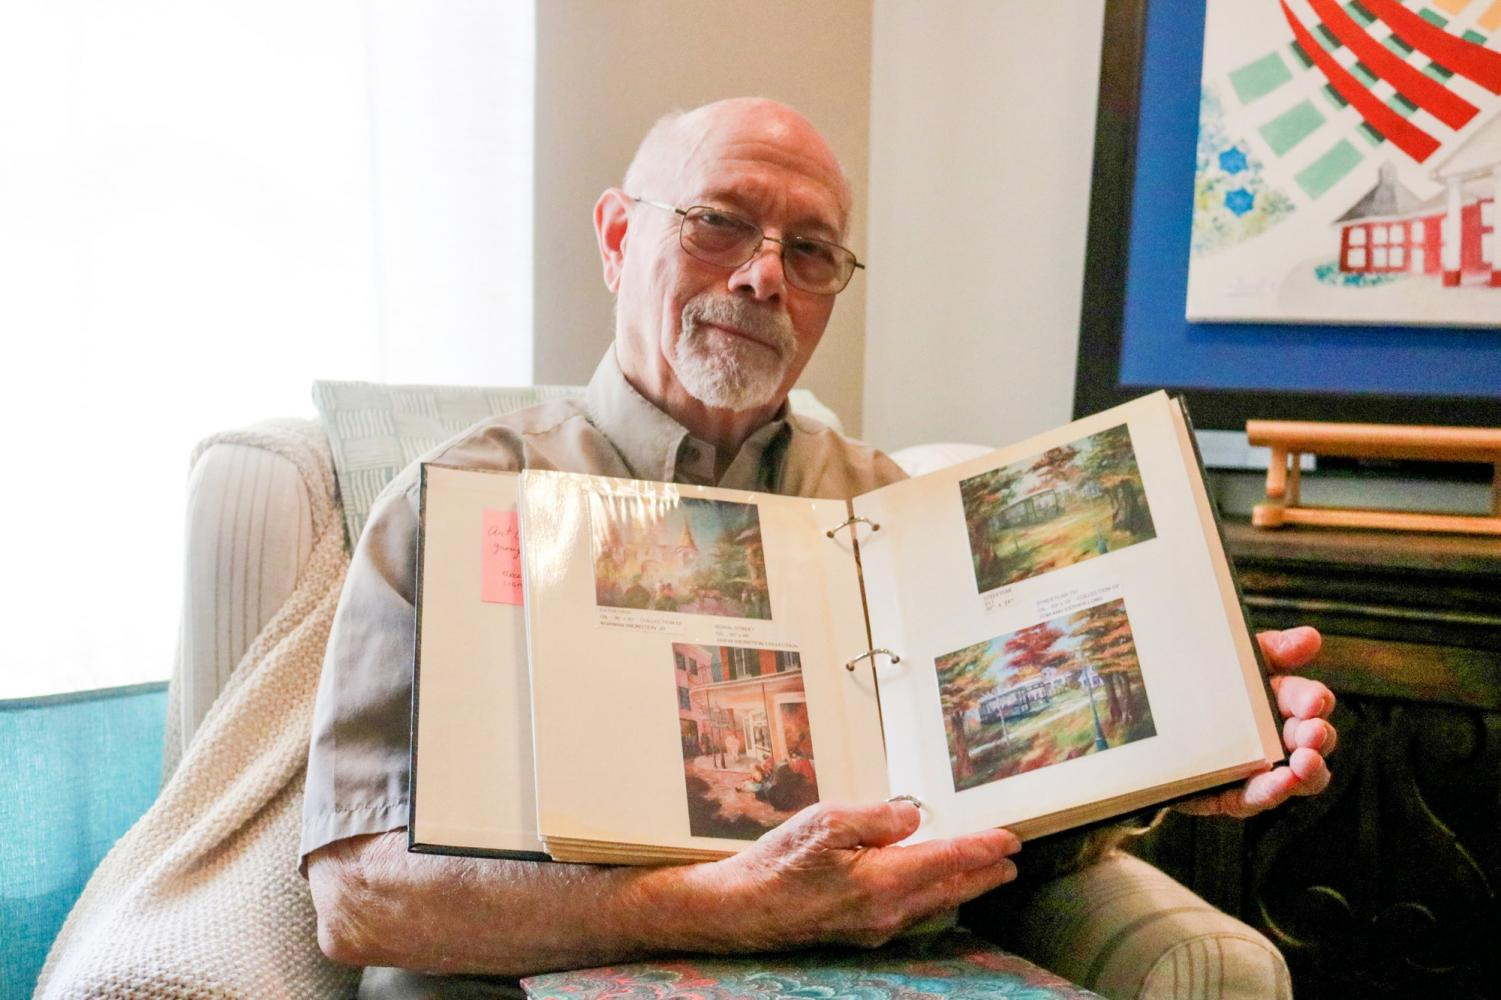 Norman Weinstein looks at scrapbooks filled with photos of paintings he has done over a span of 30 years.